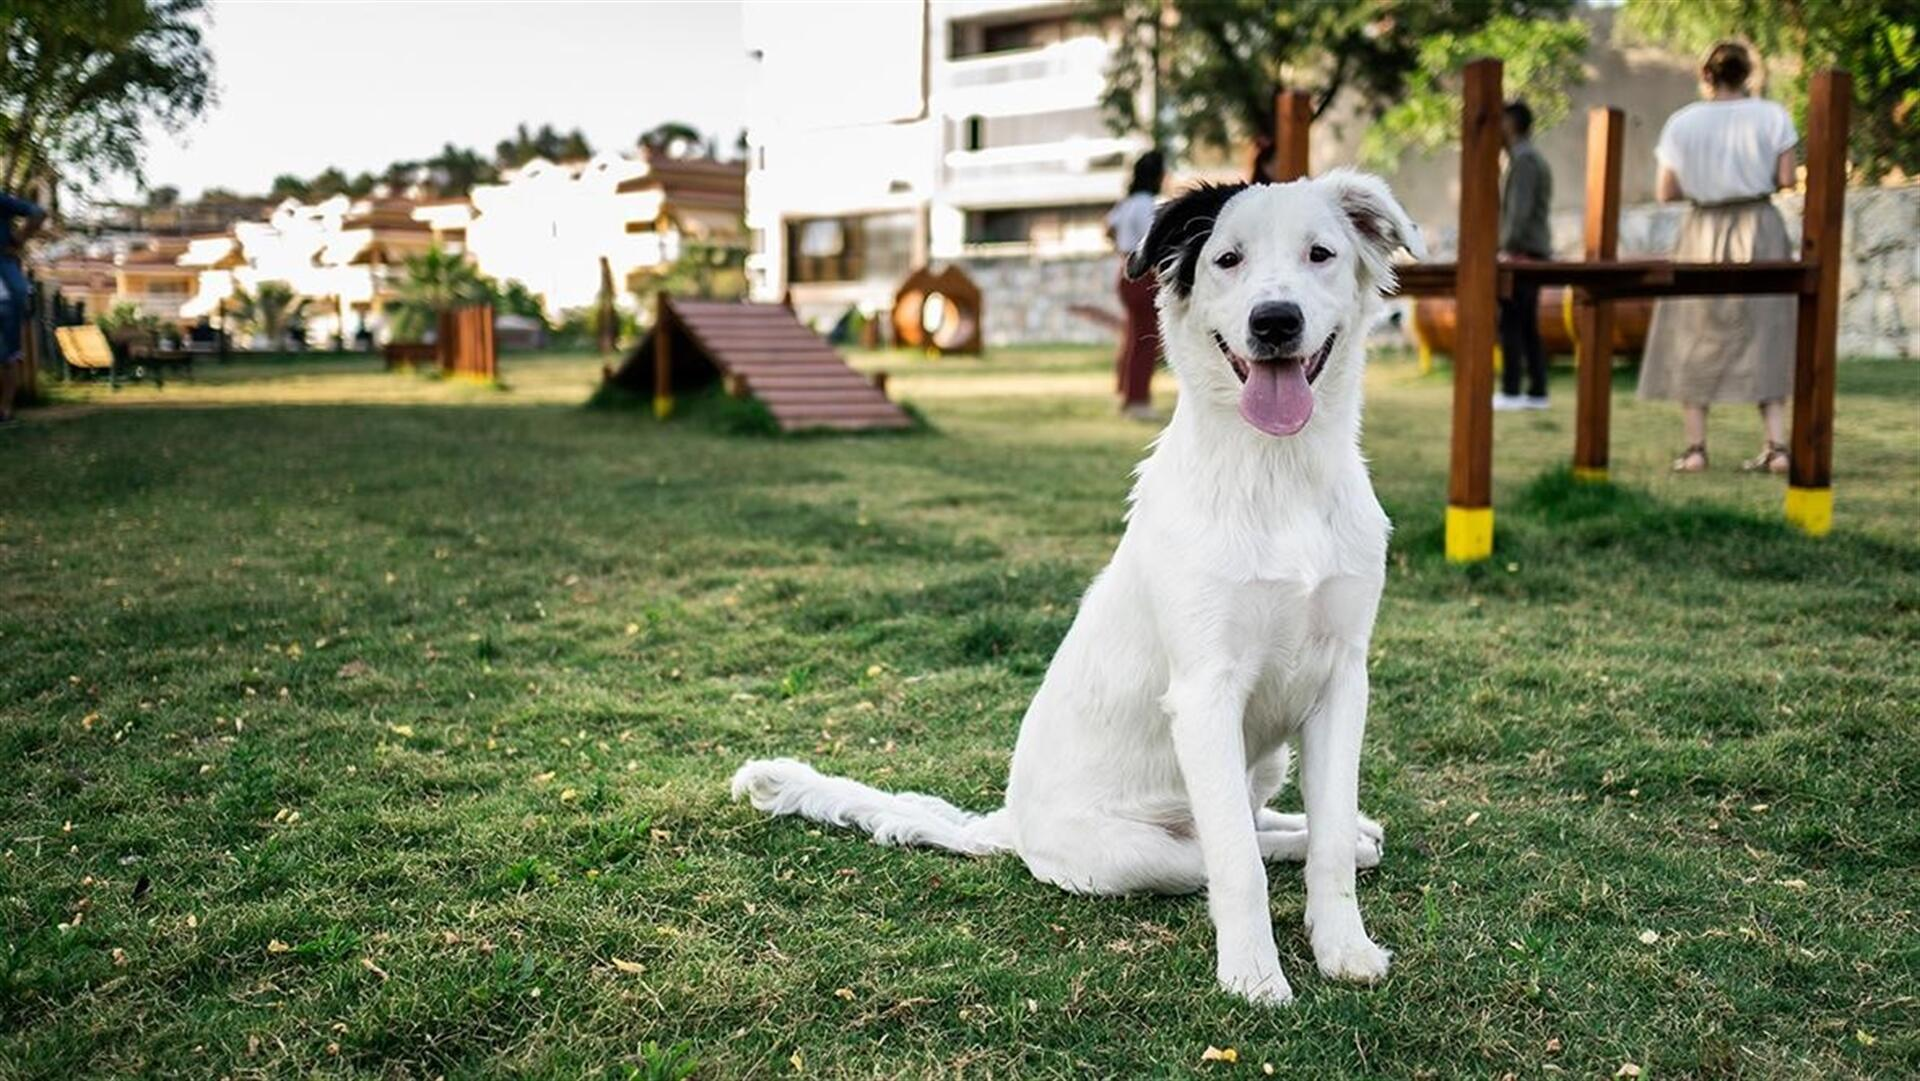 Dog park becomes meeting spot in resort town